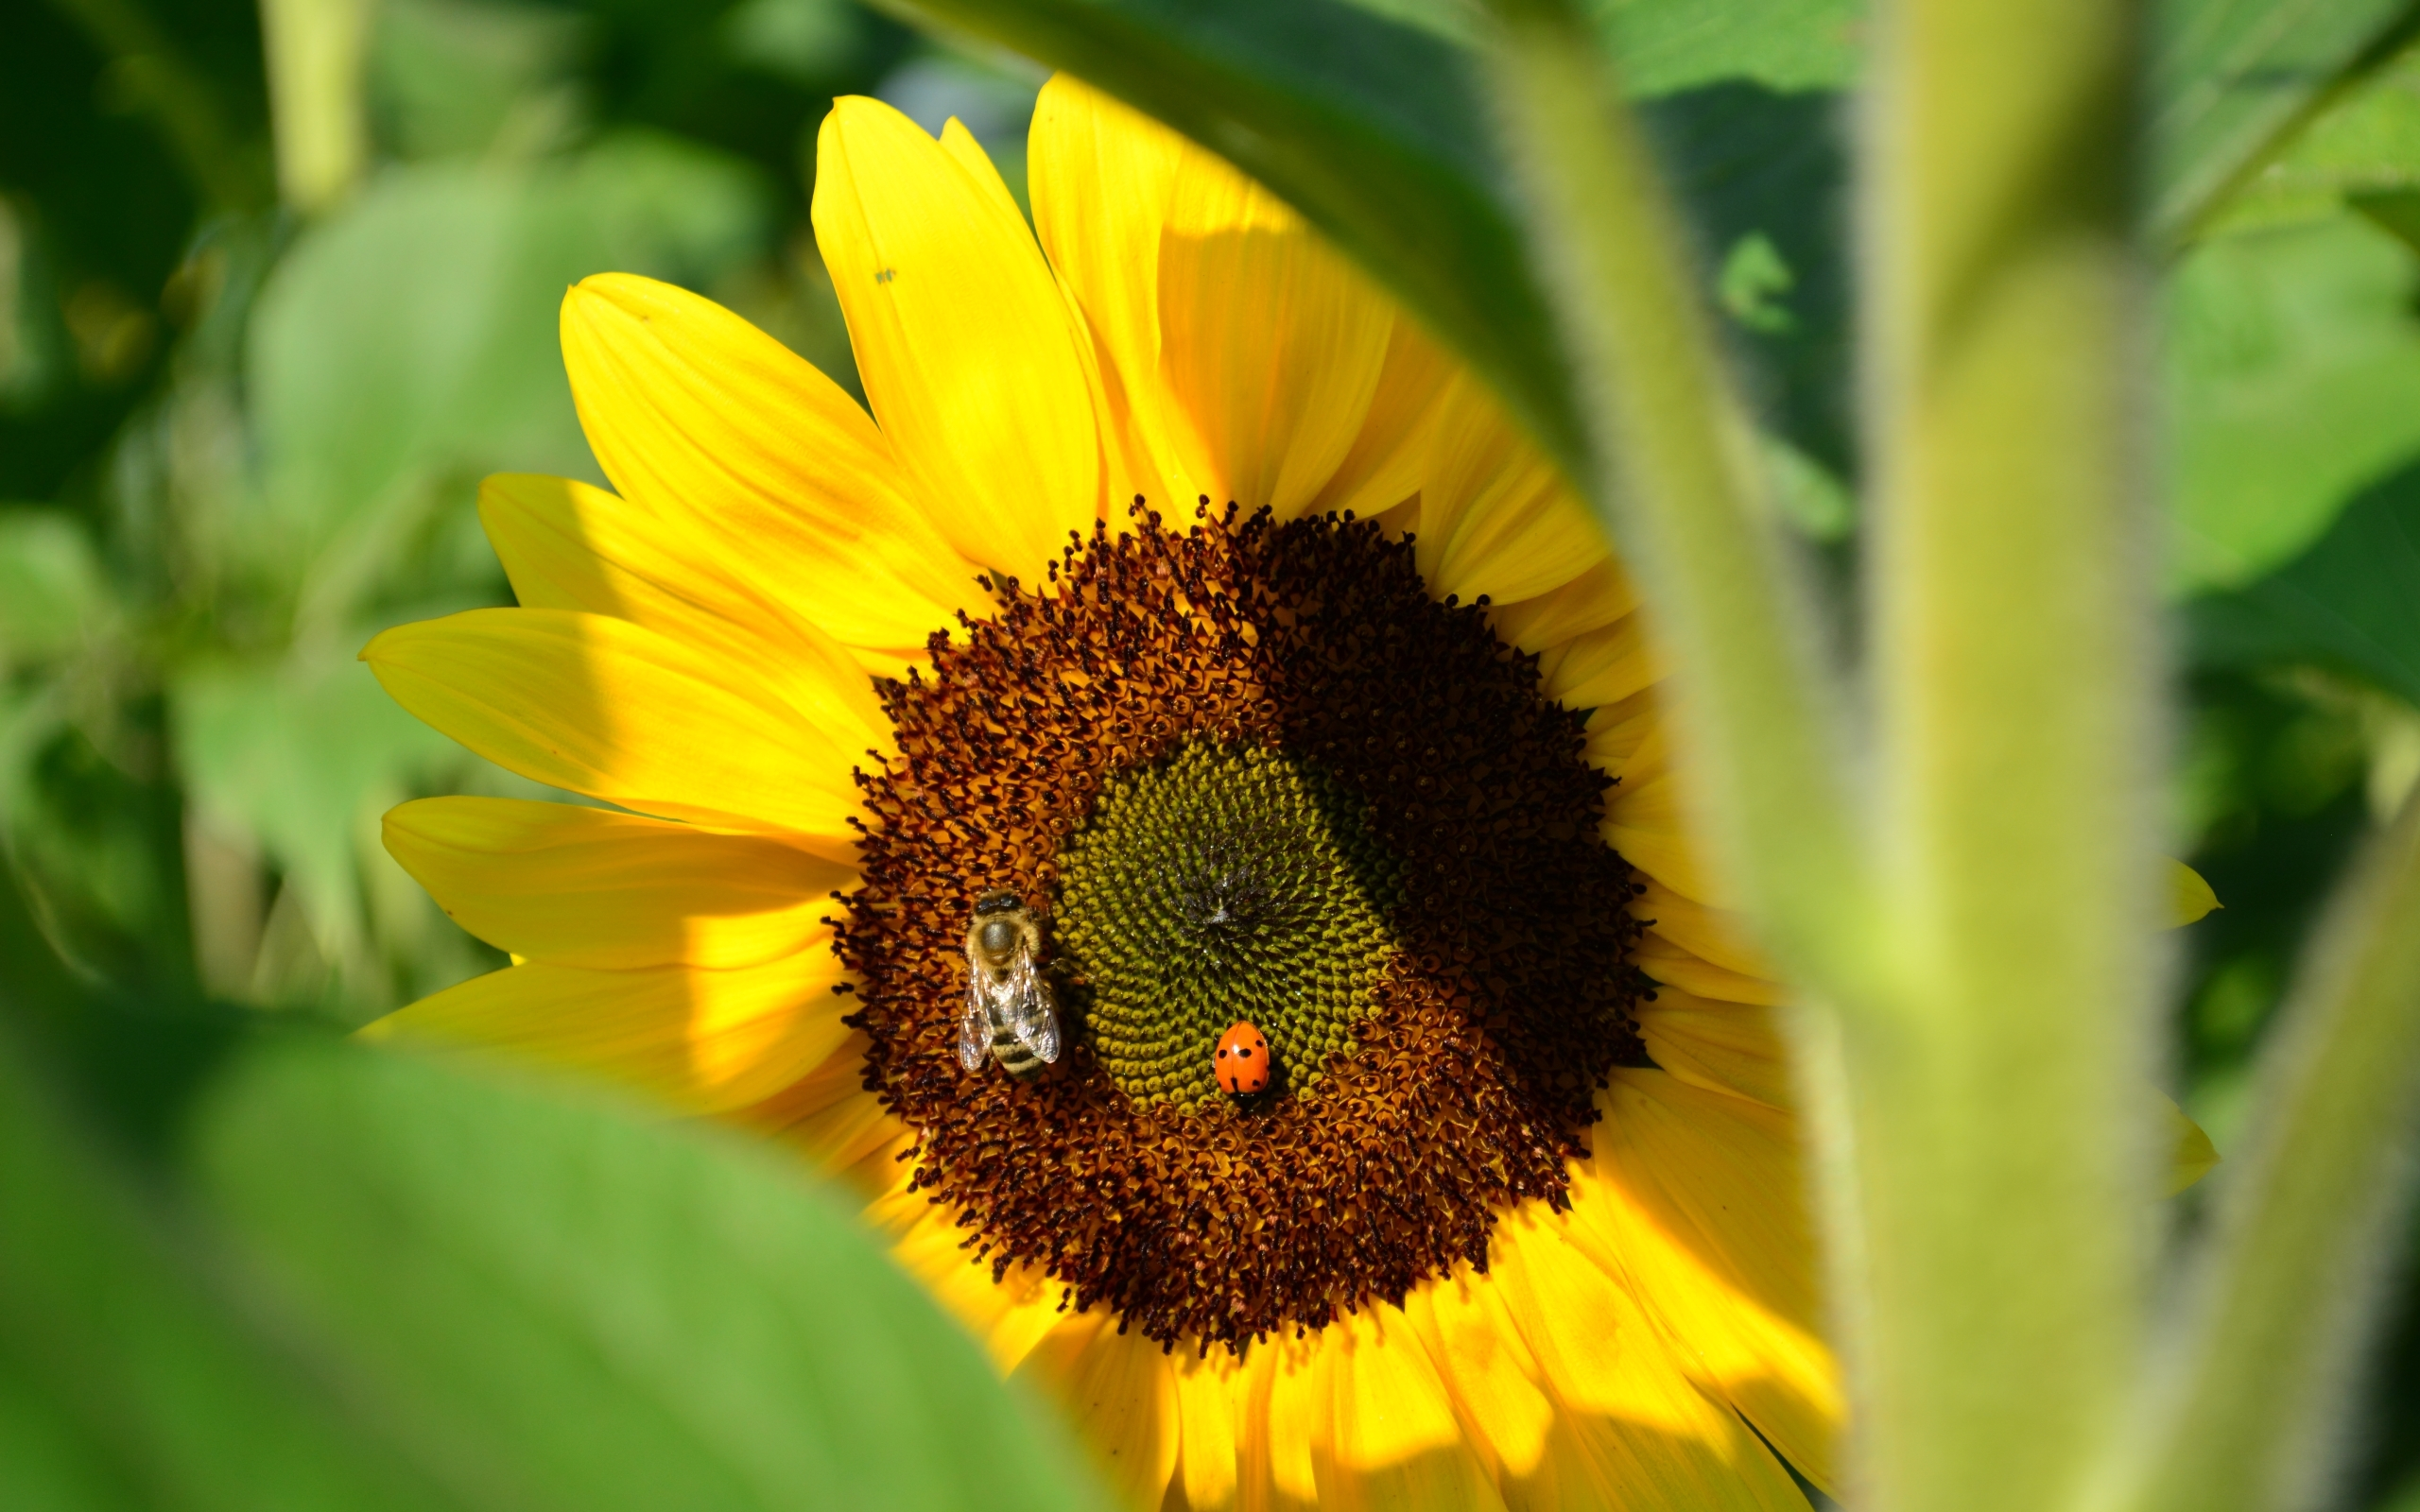 27540 Screensavers and Wallpapers Bees for phone. Download Plants, Flowers, Insects, Sunflowers, Bees, Ladybugs pictures for free